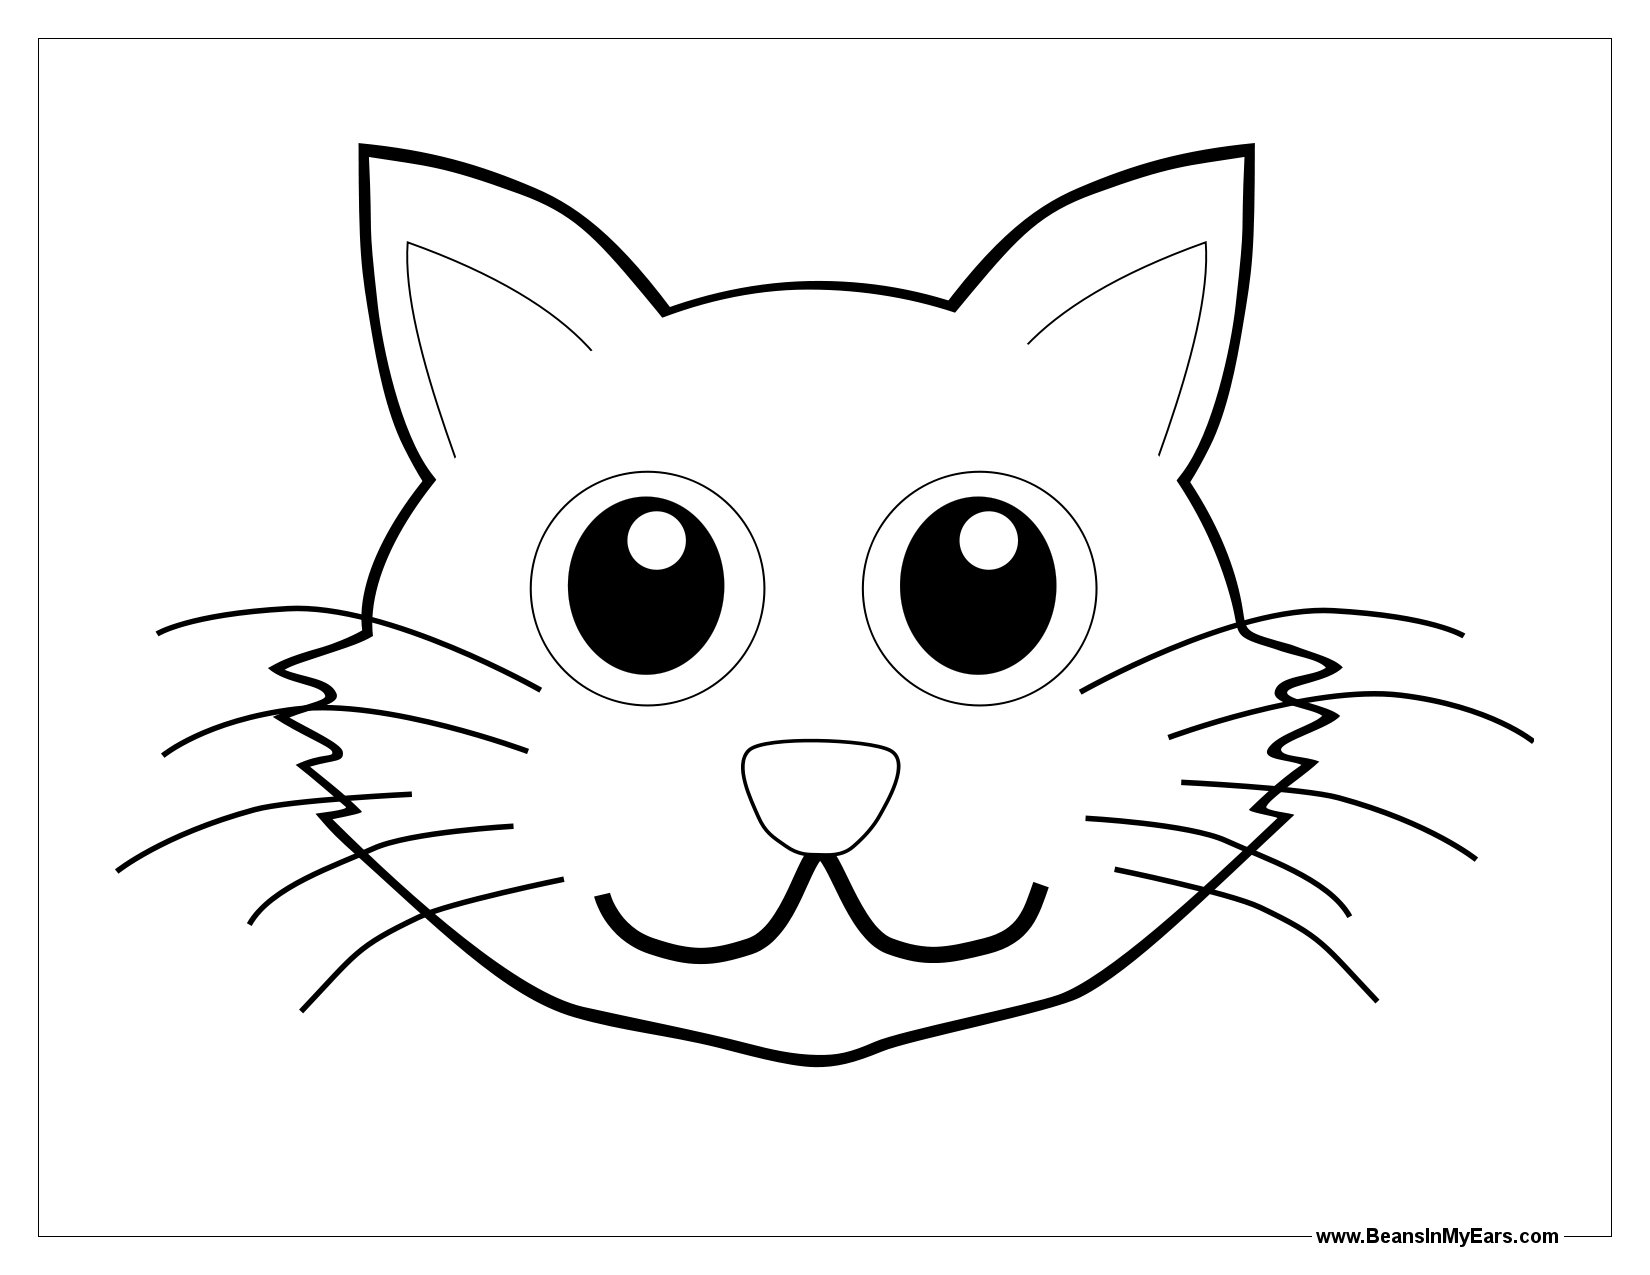 1650x1275 Cat Face Coloring Page Printable Animal Masks Elephant Mask On Pj